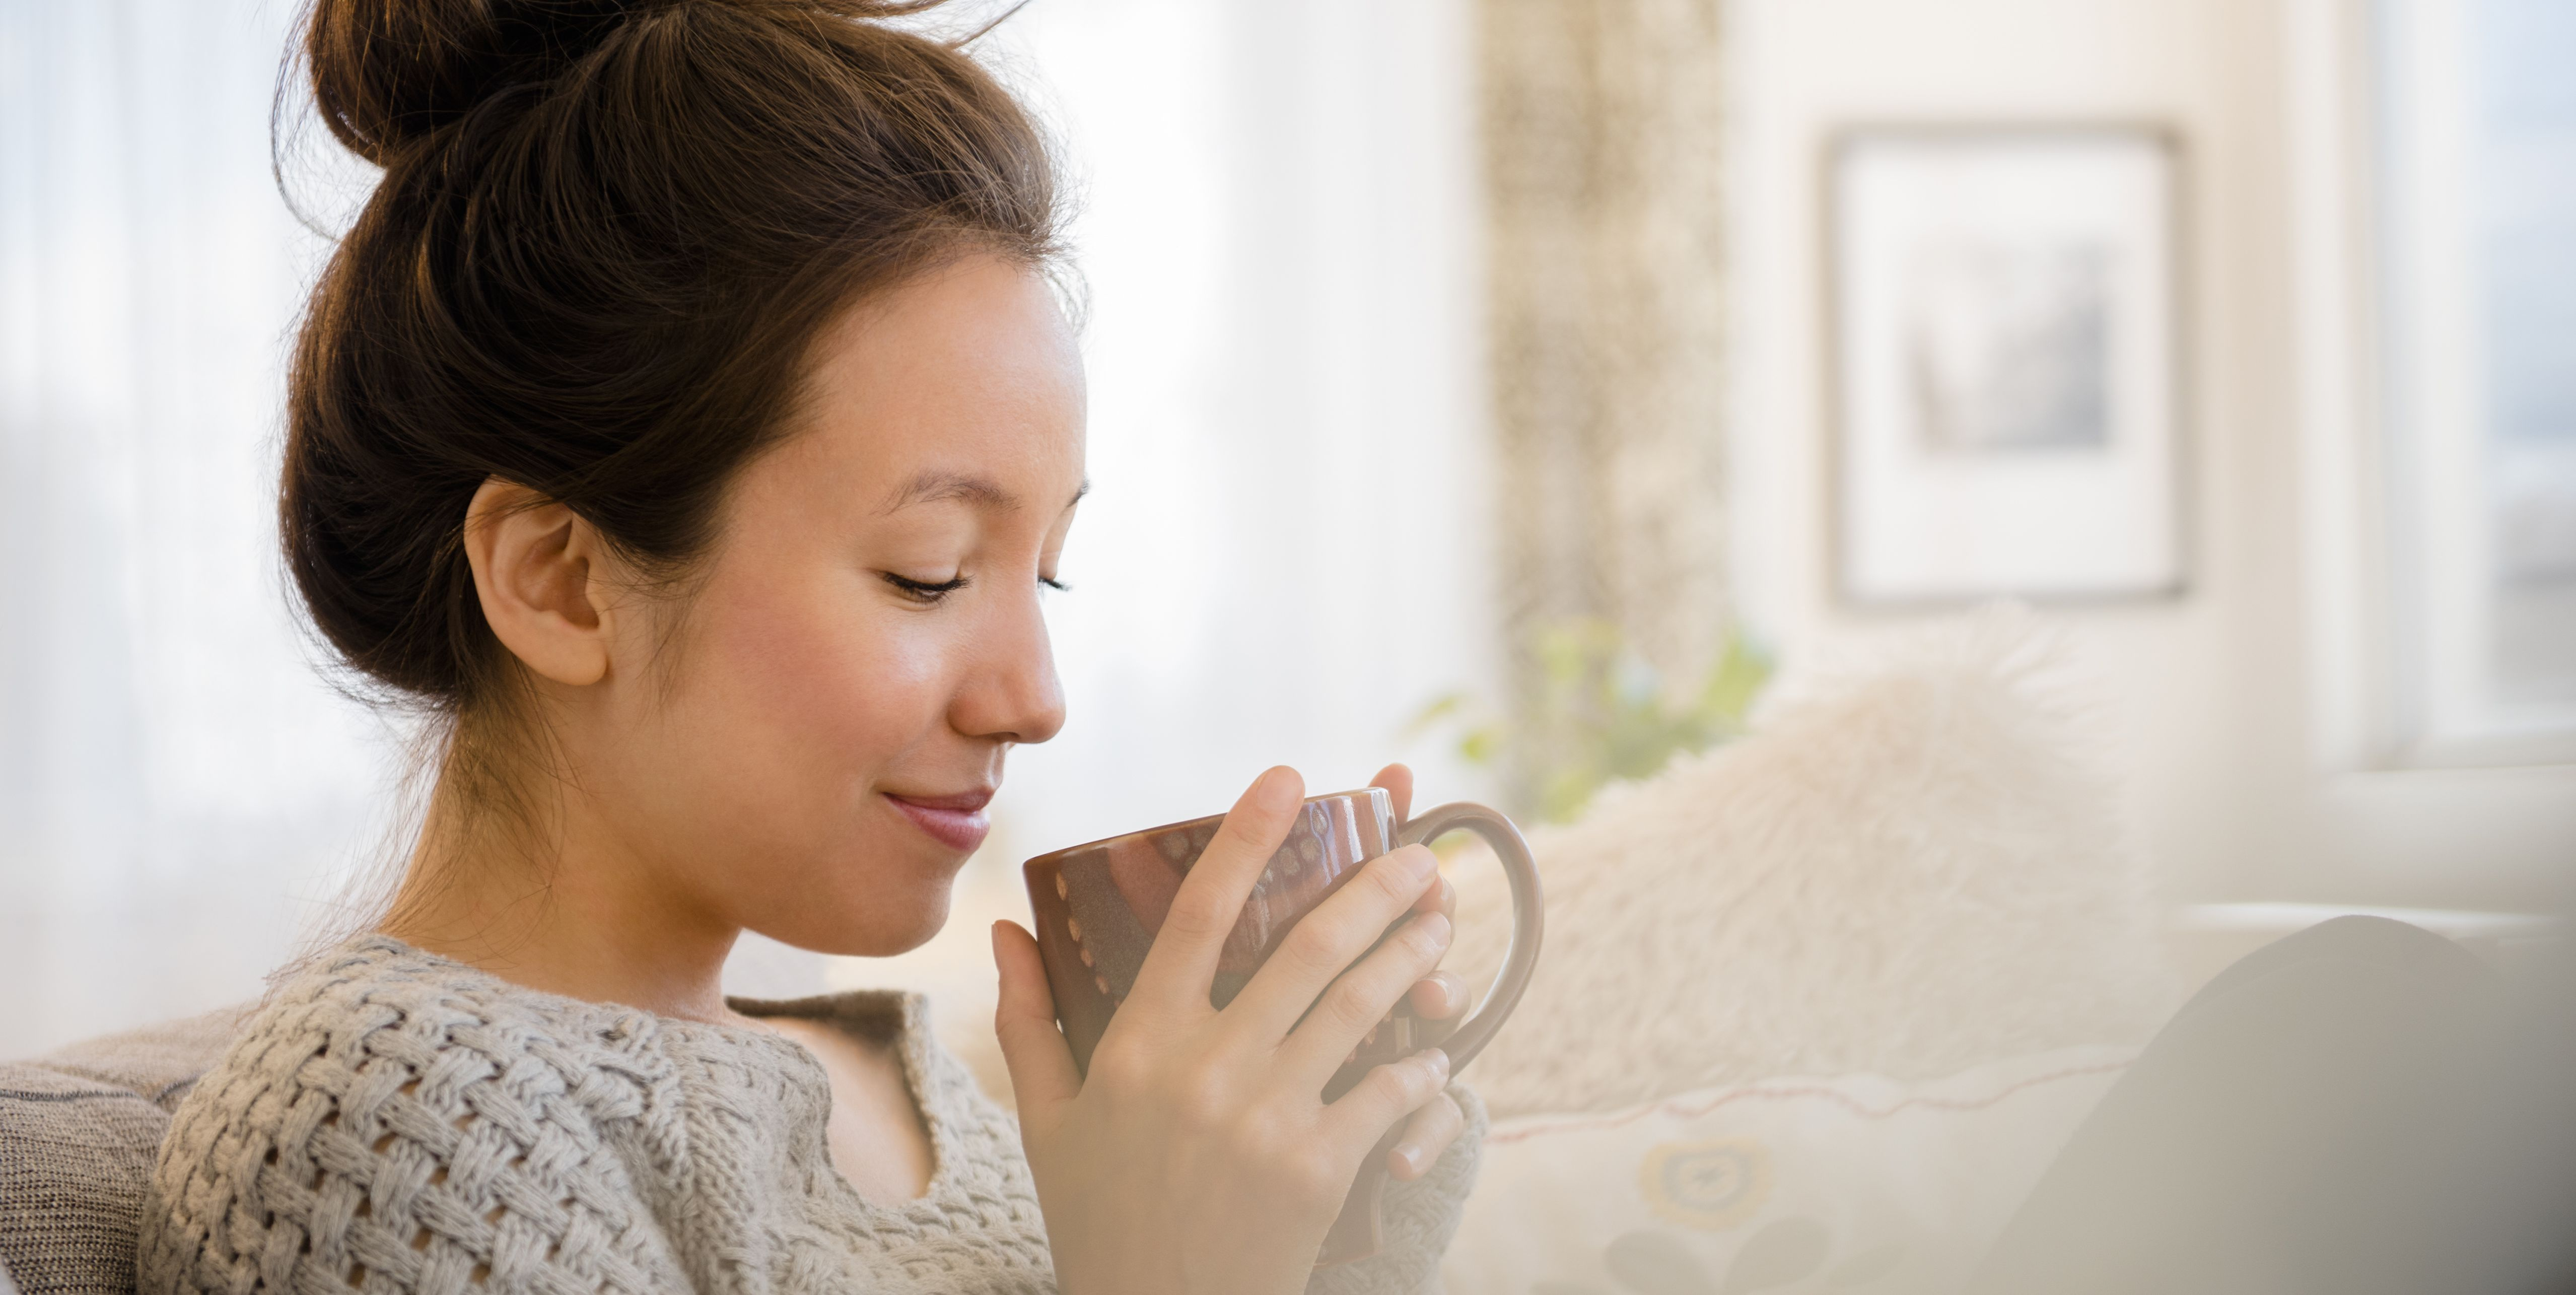 14 Tips for Creating a Self-Care Routine to Nourish Your Body and Soul